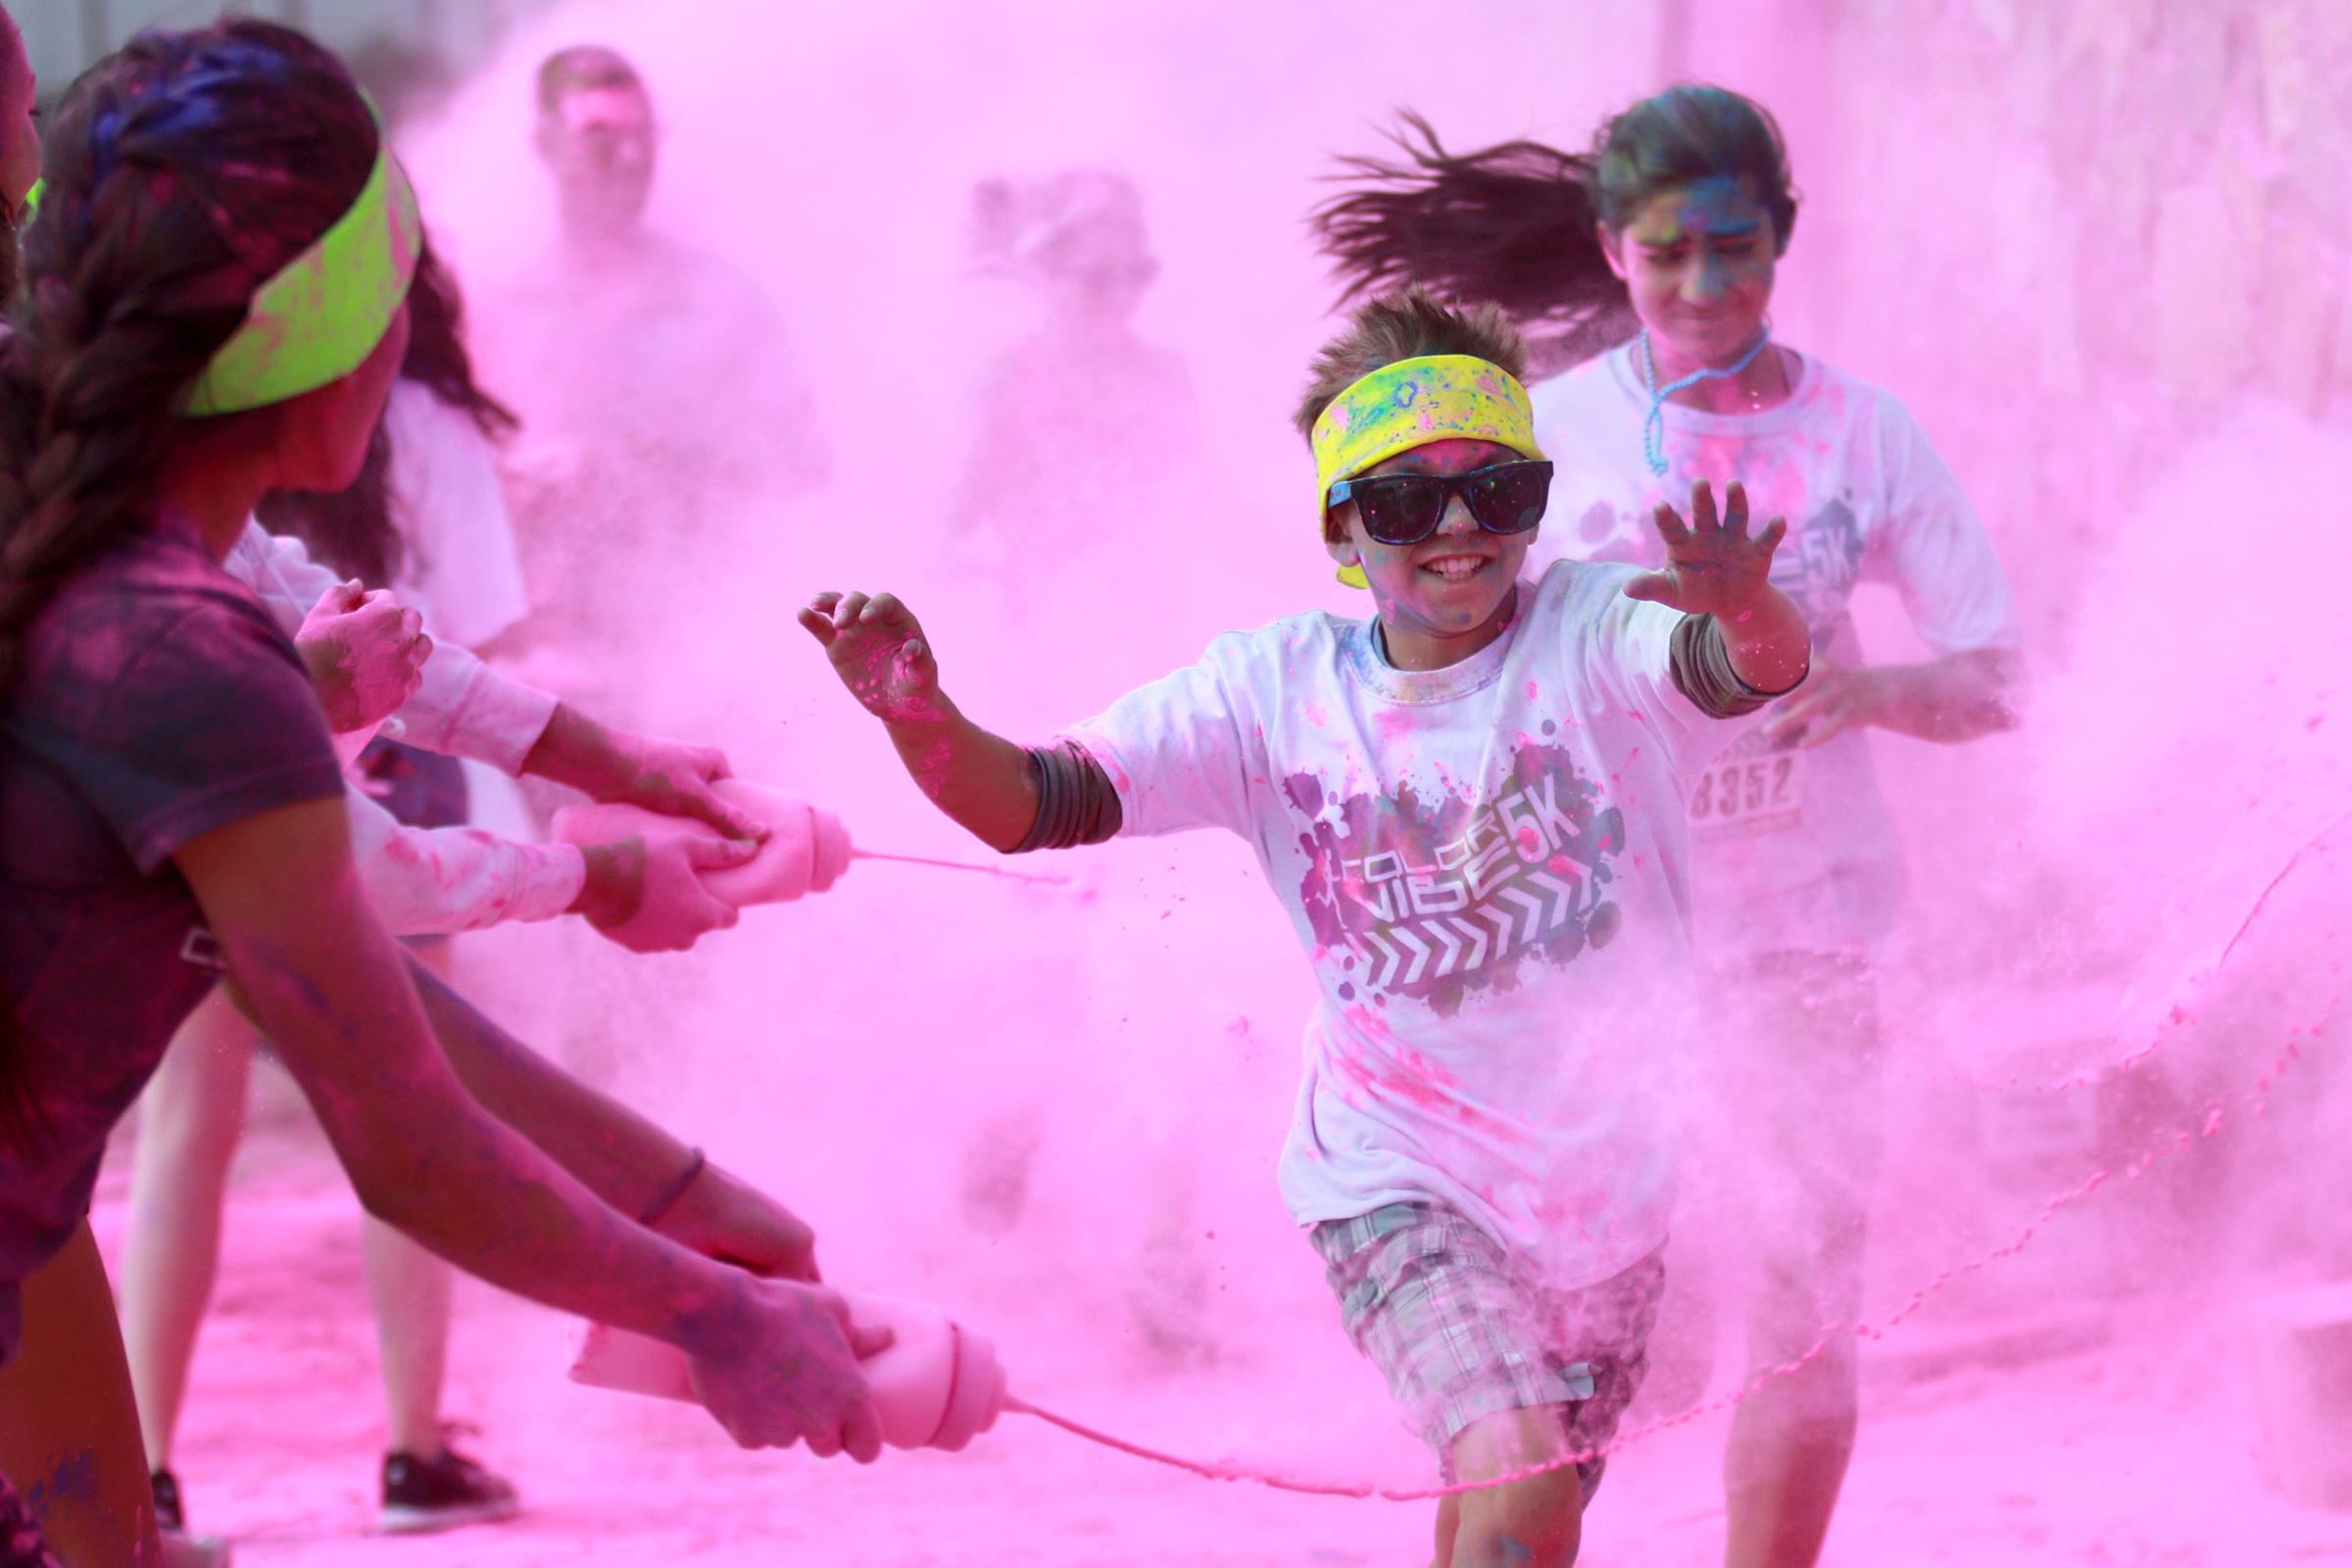 Participants of the Color Vibe 5K marathon are splashed with powdered paint at Ascarate Park in El Paso, Texas on Apr 4, 2015,